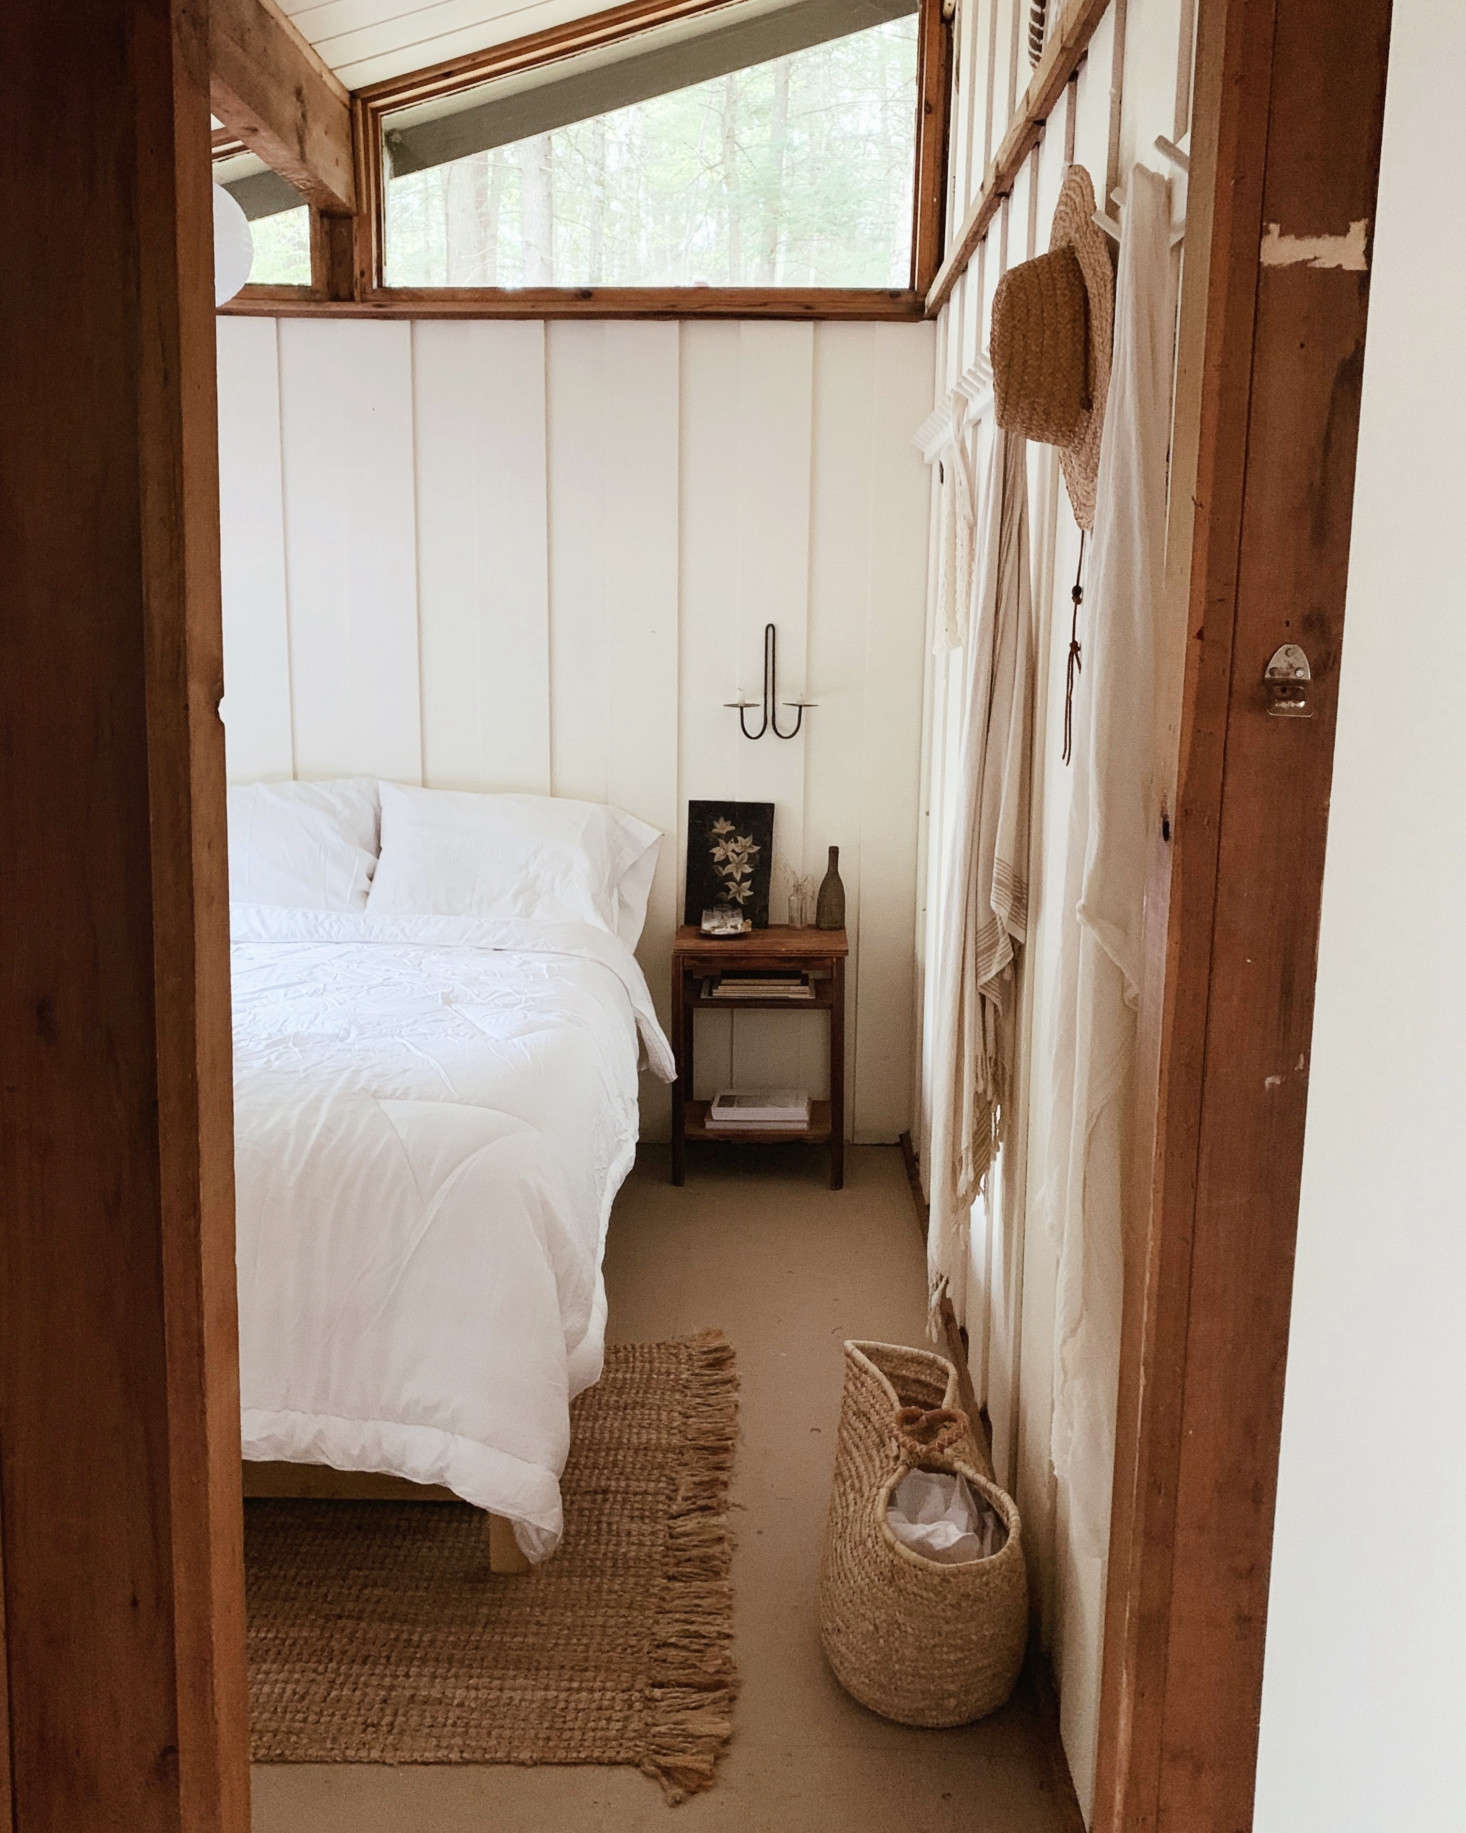 Into the bedroom, which is kept bright and spacious with white walls and linens.